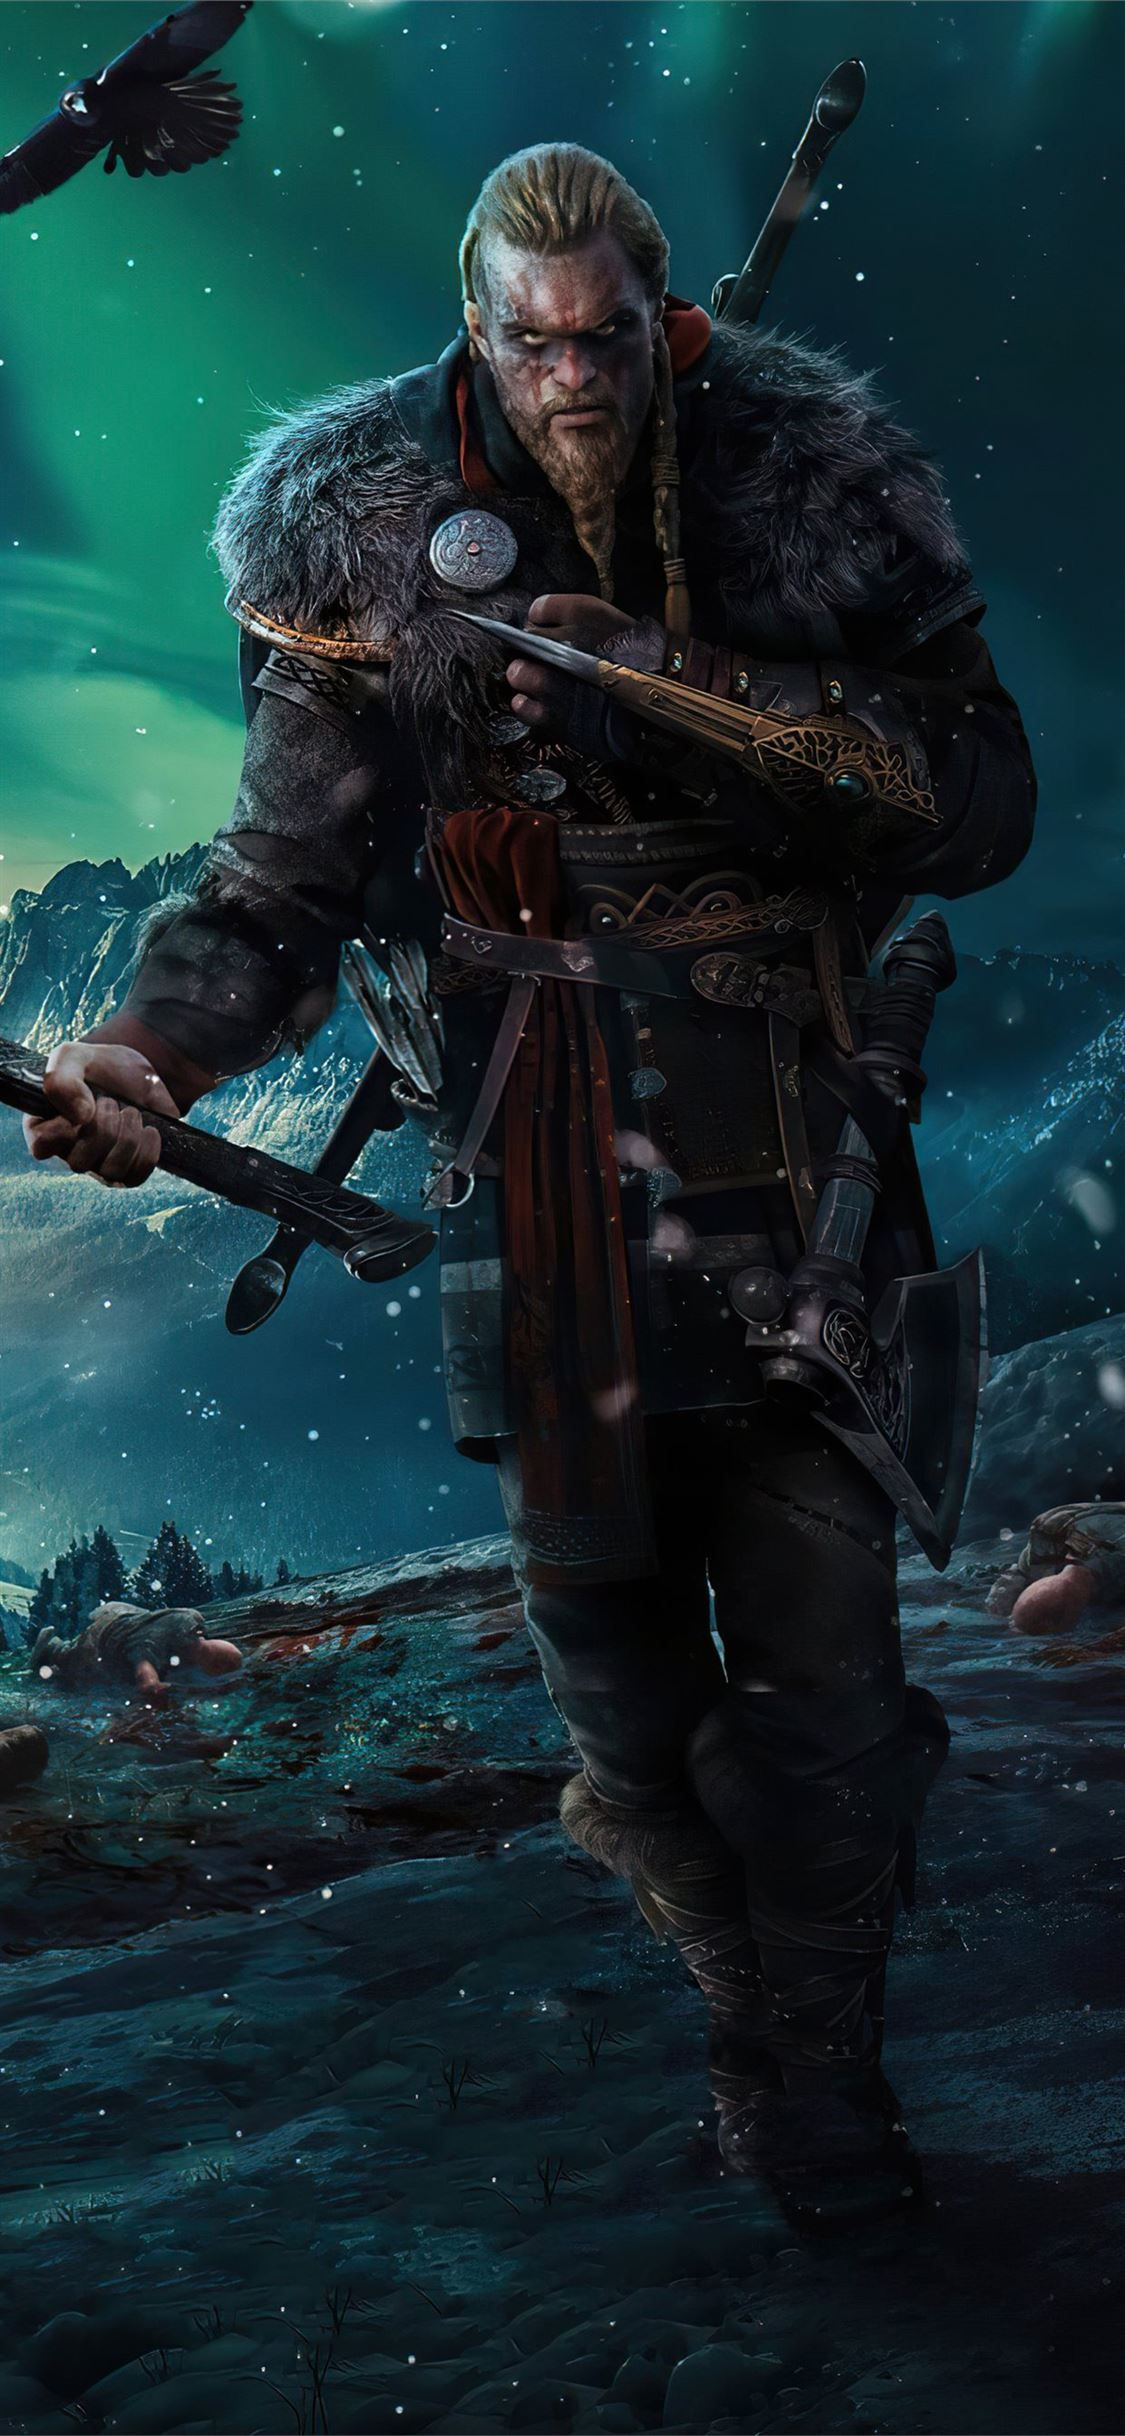 assassins creed valhalla 4k game iPhone 11 Wallpapers